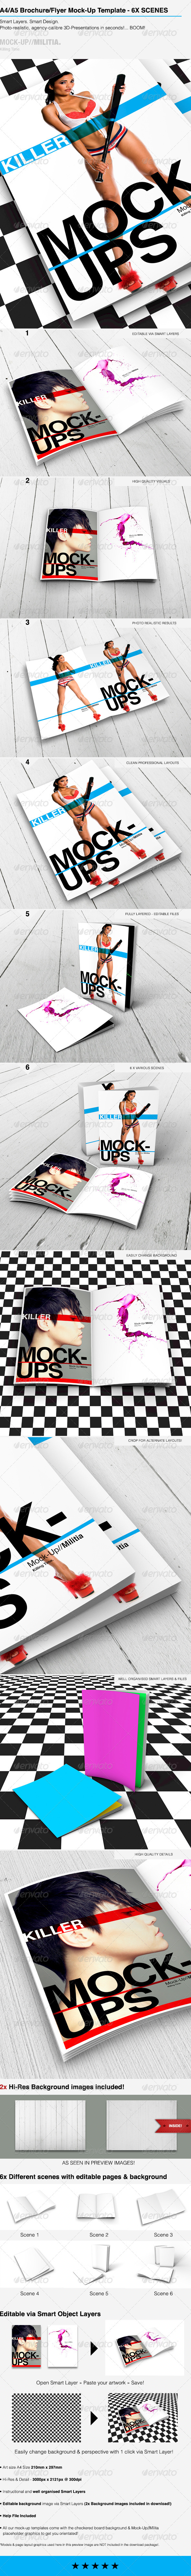 GraphicRiver A4 Brochure Mock-Up Template With Various Scenes 6432215